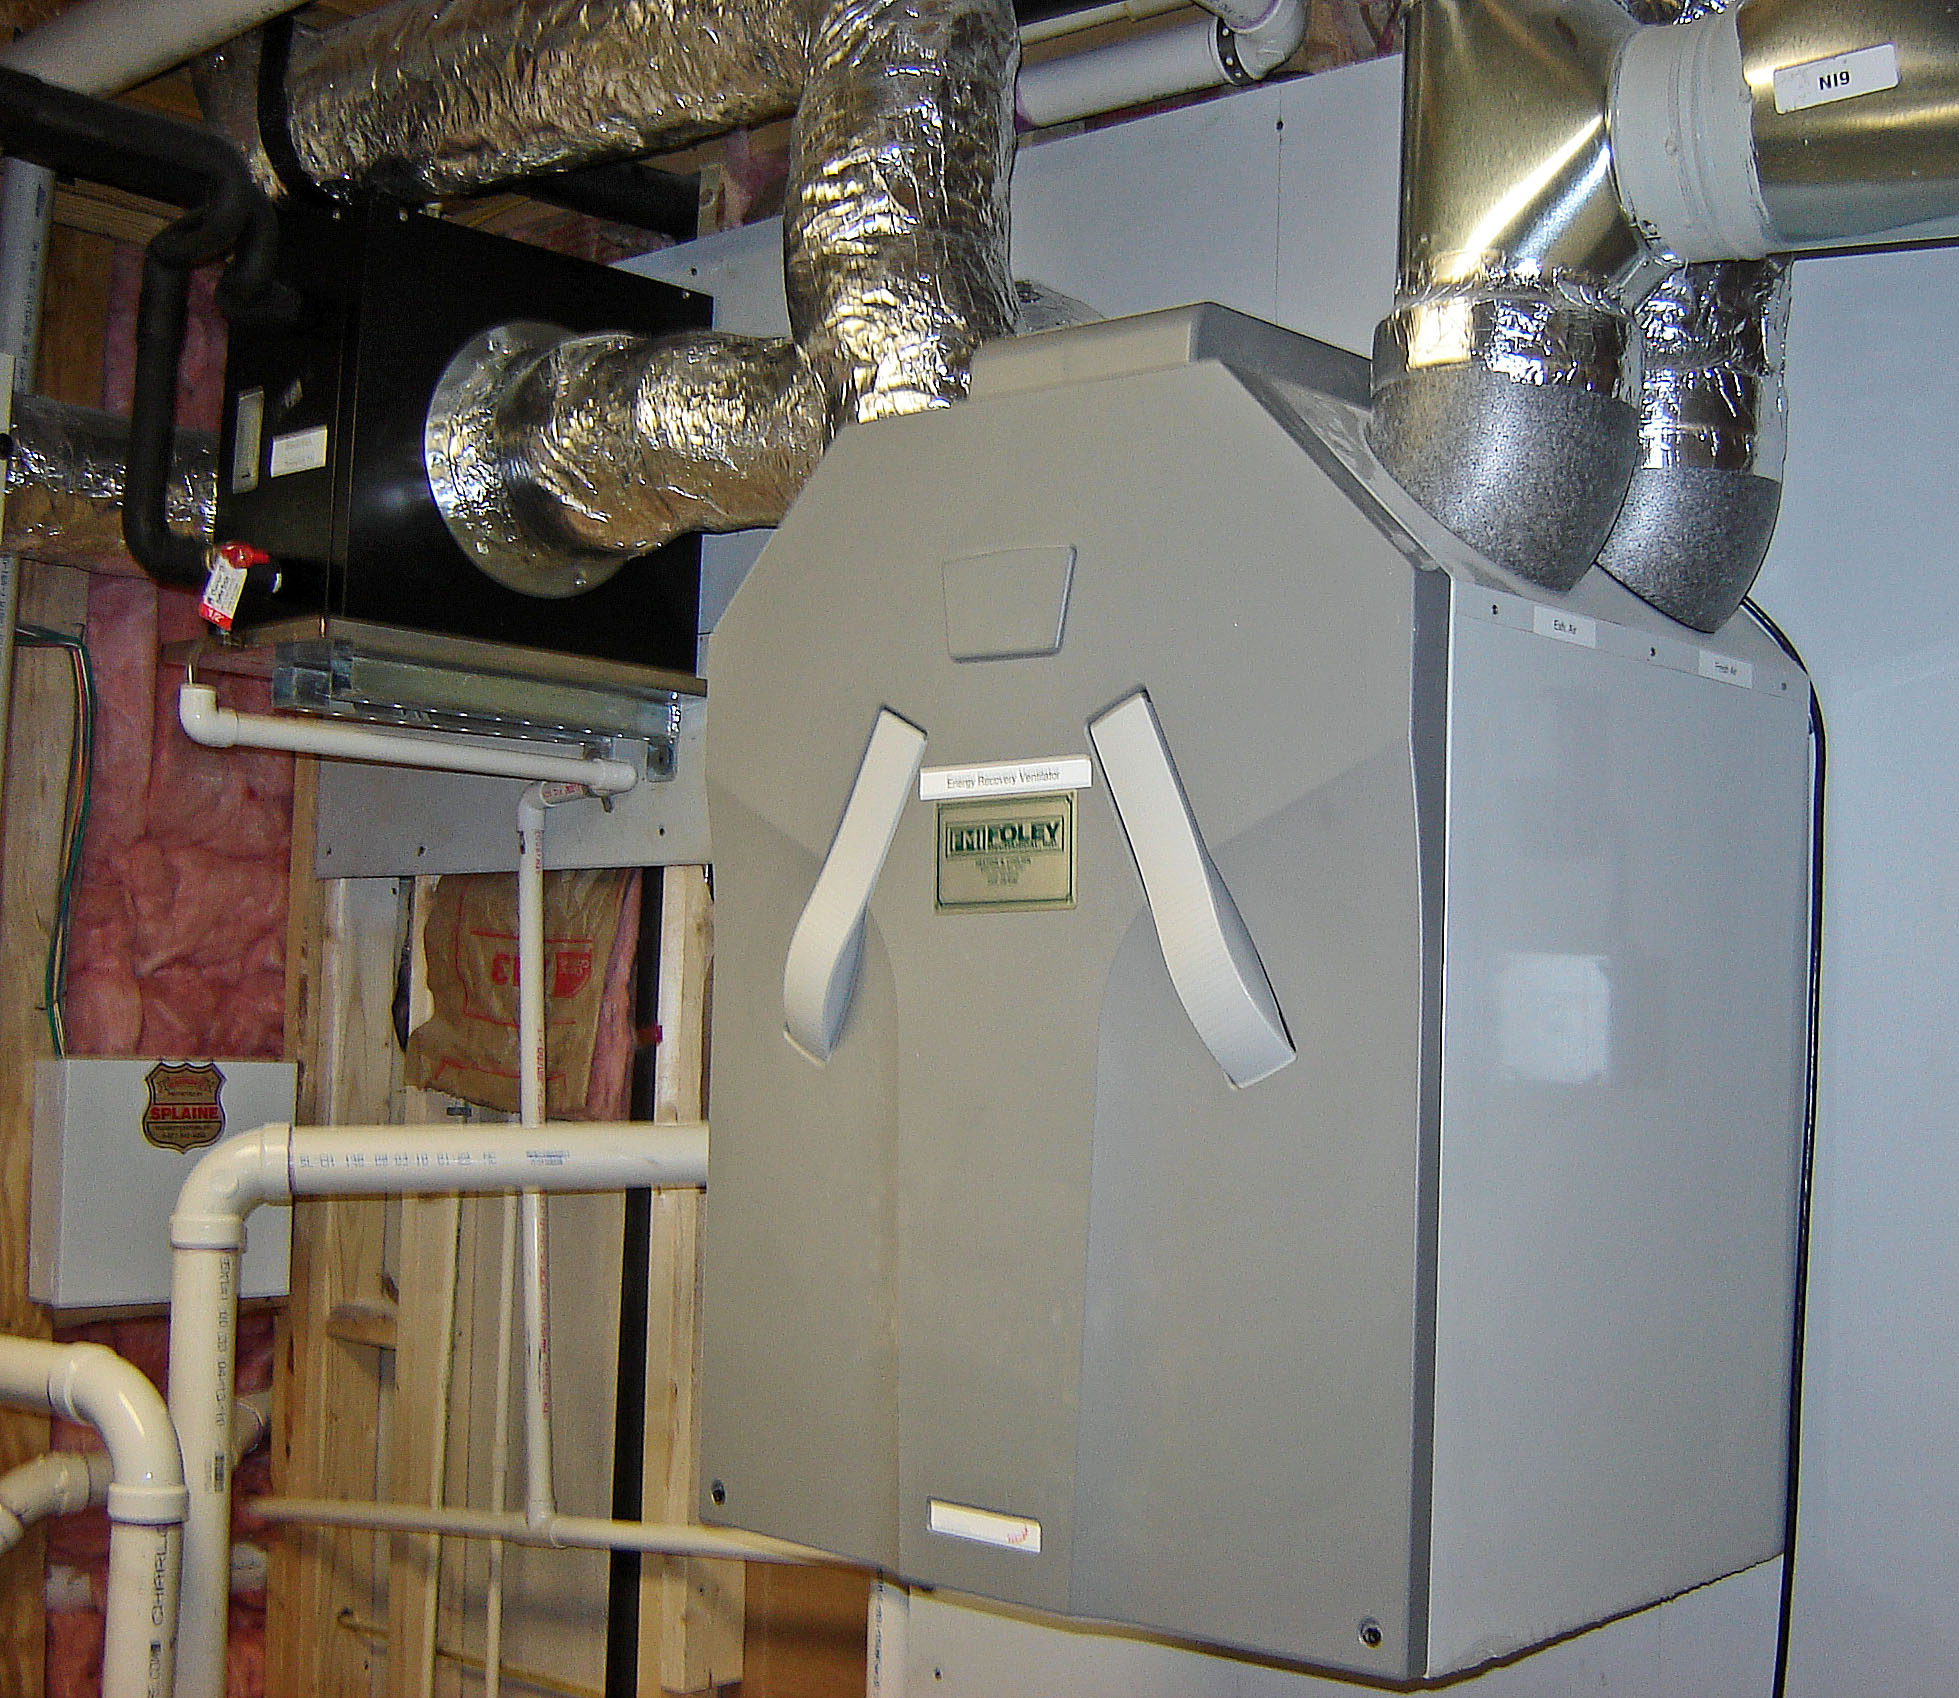 for basement and first flow to the left of the erv is a heat exchange